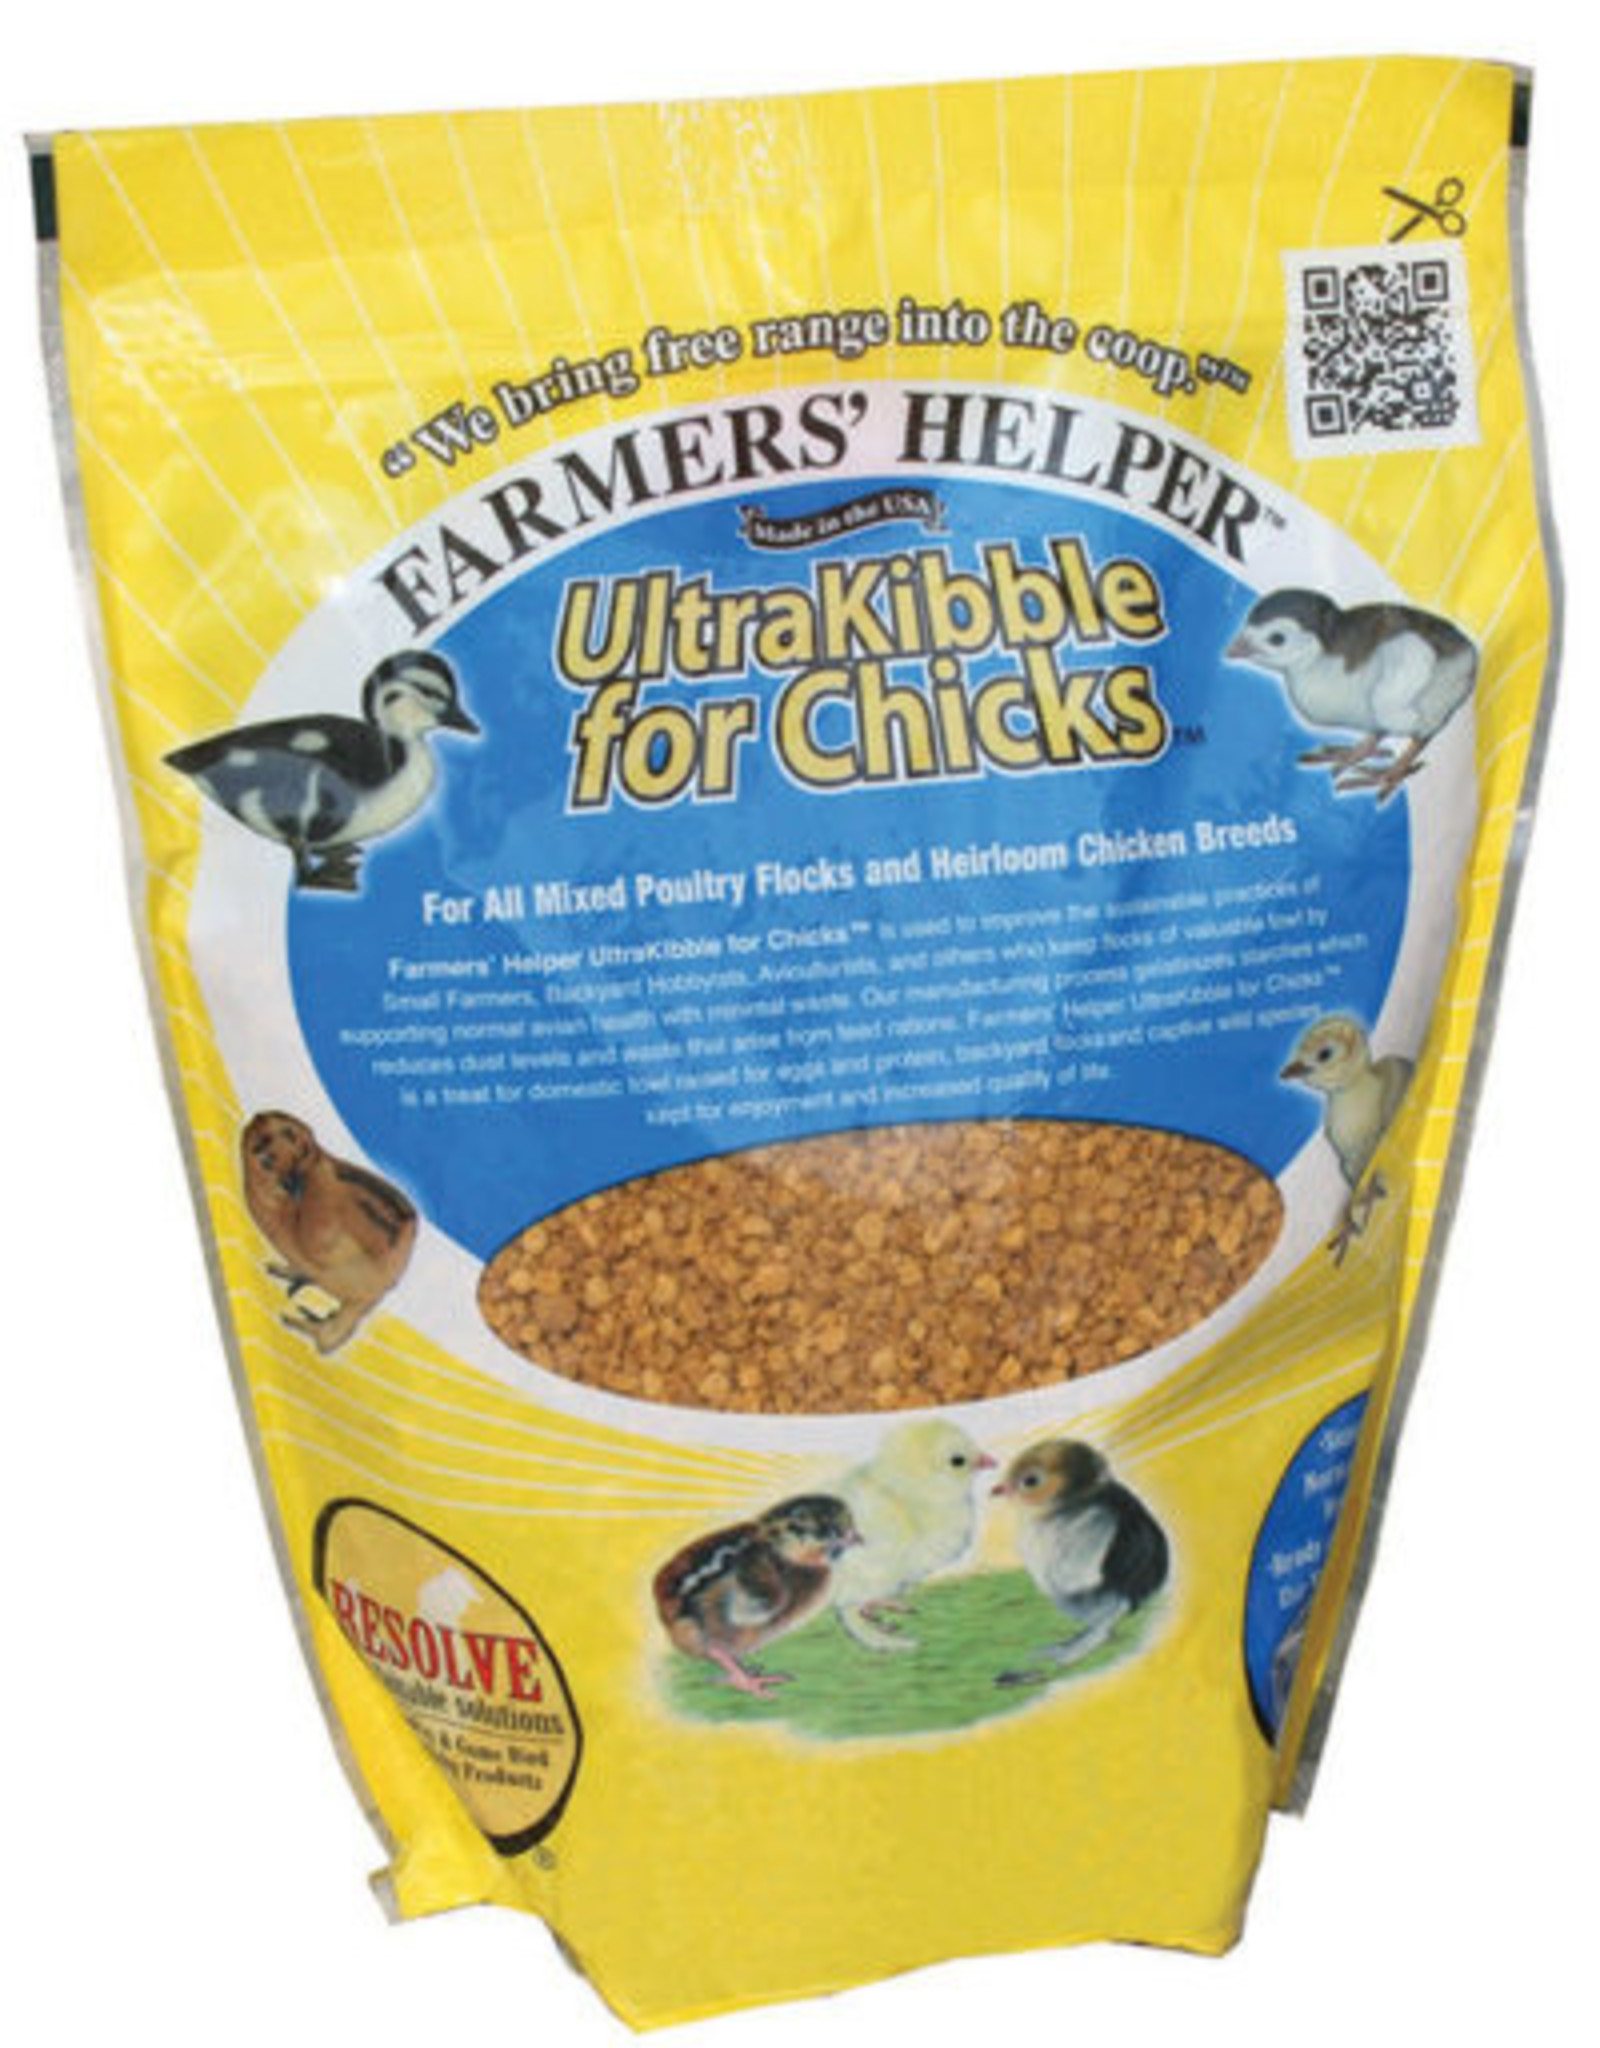 C AND S PRODUCTS CO INC P FARMERS' HELPER ULTRAKIBBLE FOR CHICKS 36OZ